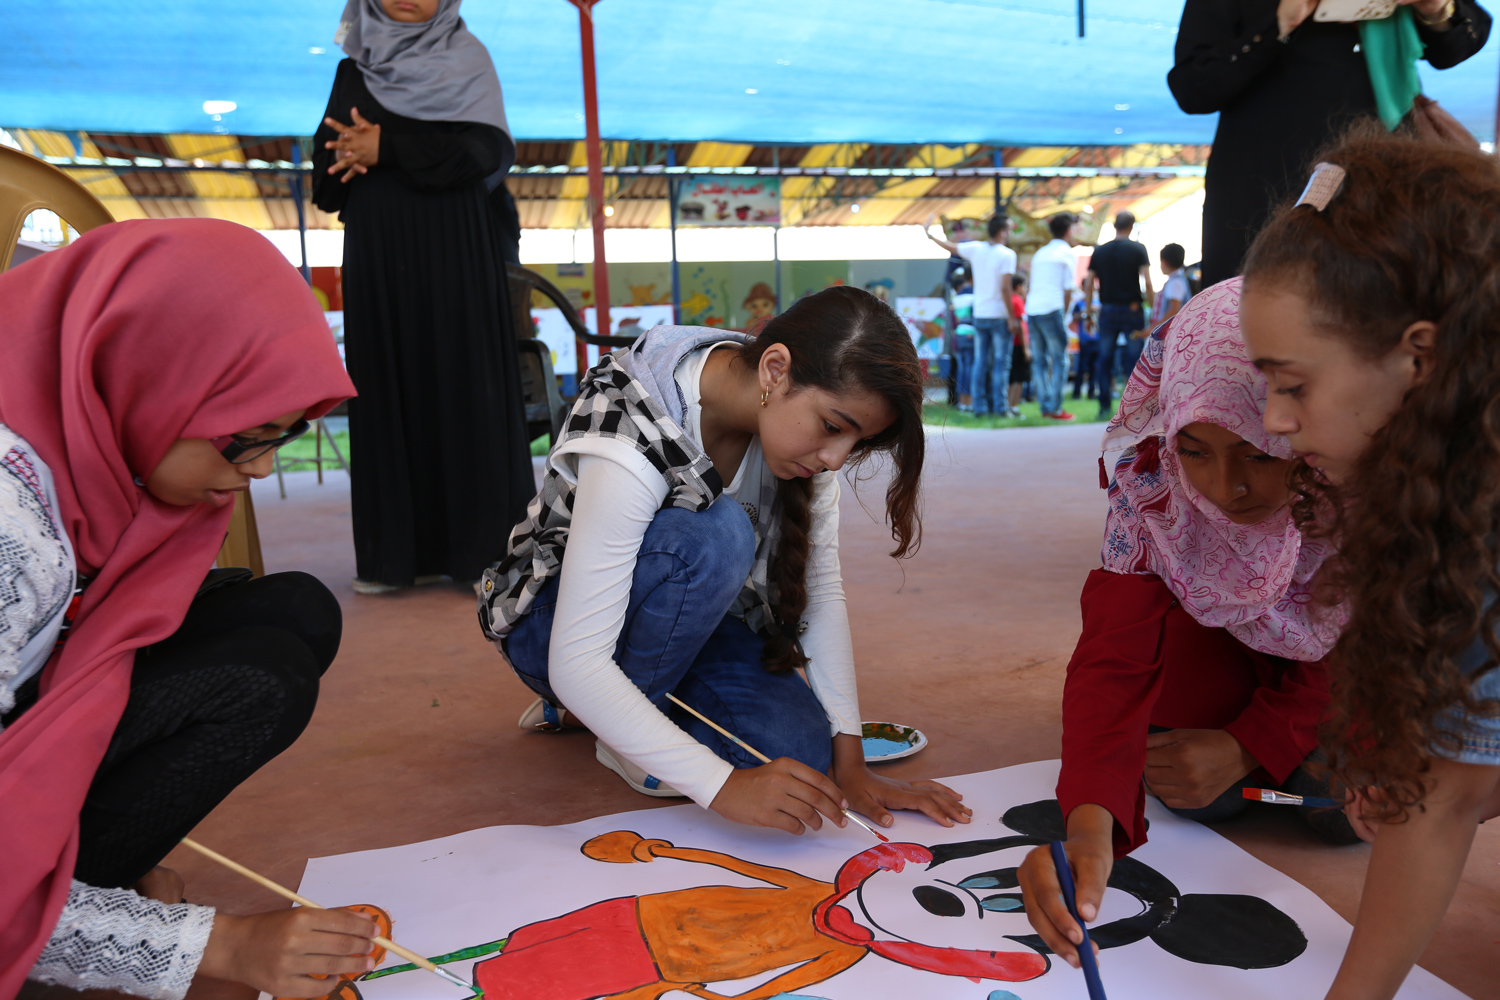 12-year-old Yaqeen Abu Saeed participating in a drawing activity, one of the activities implemented during the recreational trips conducted by the UNRWA Relief and Social Services Programme. © 2016 UNRWA Photo by Tamer Hamam